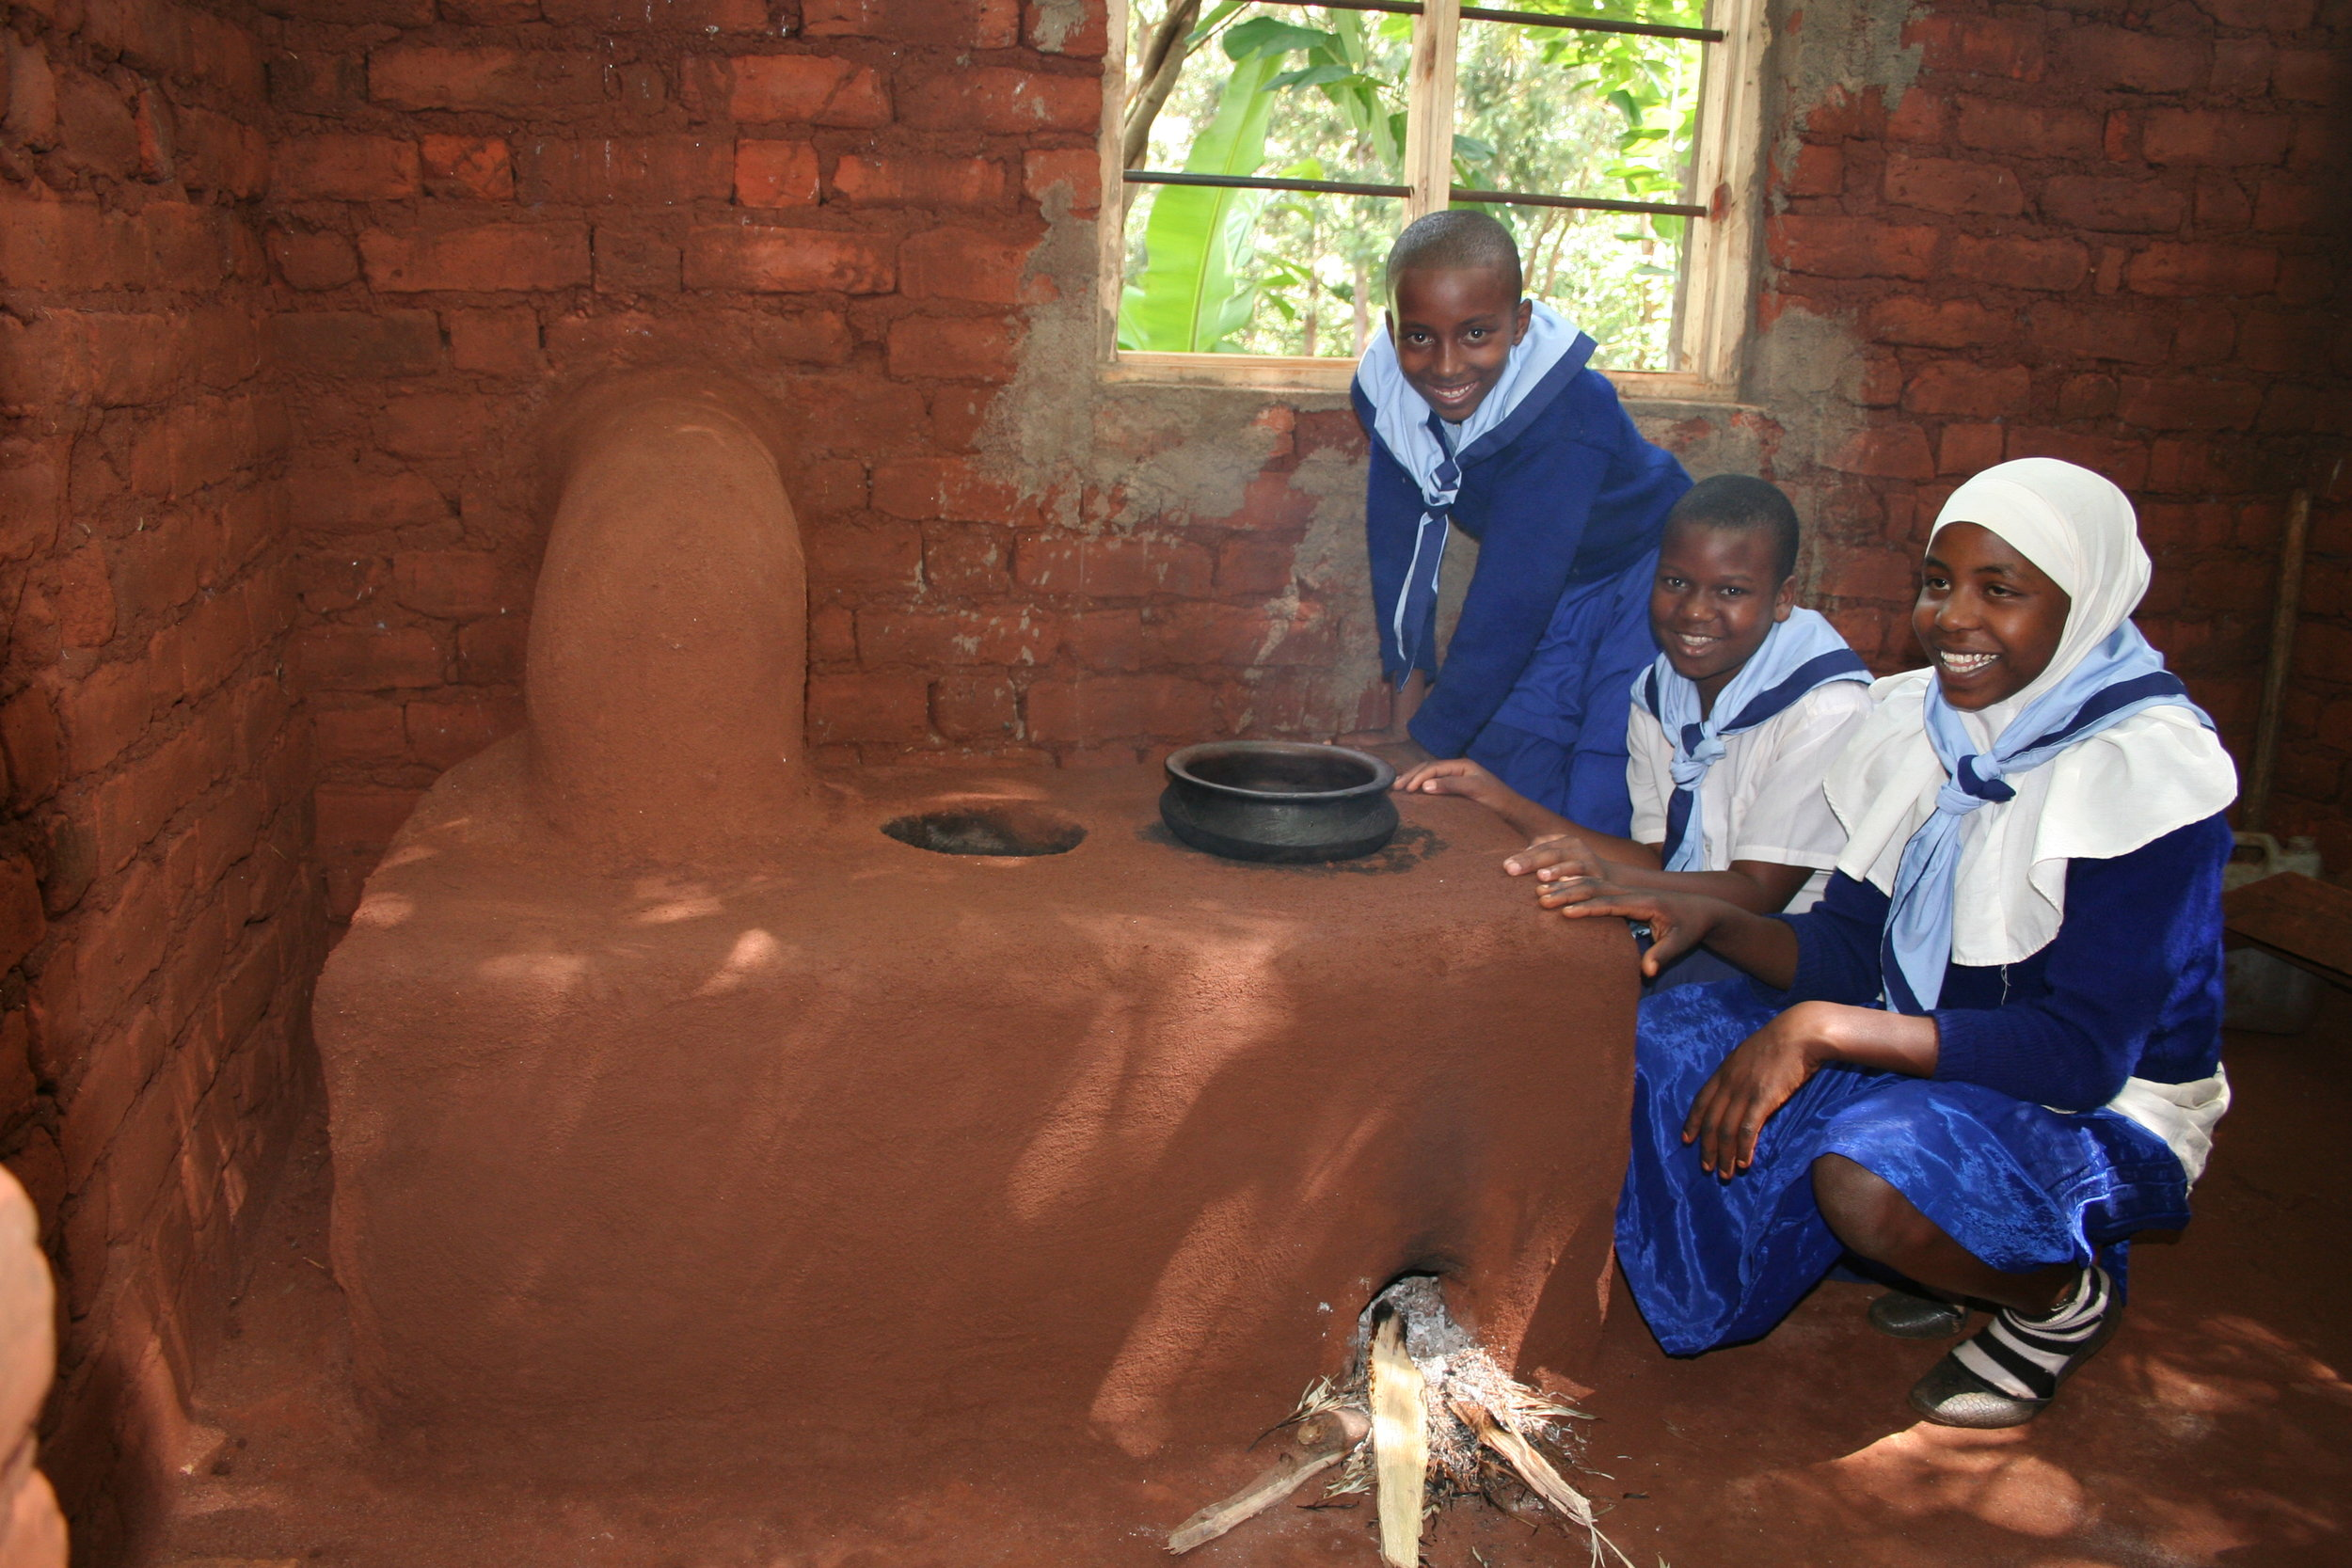 The Girl Guides helping to change harmful environmental practices.